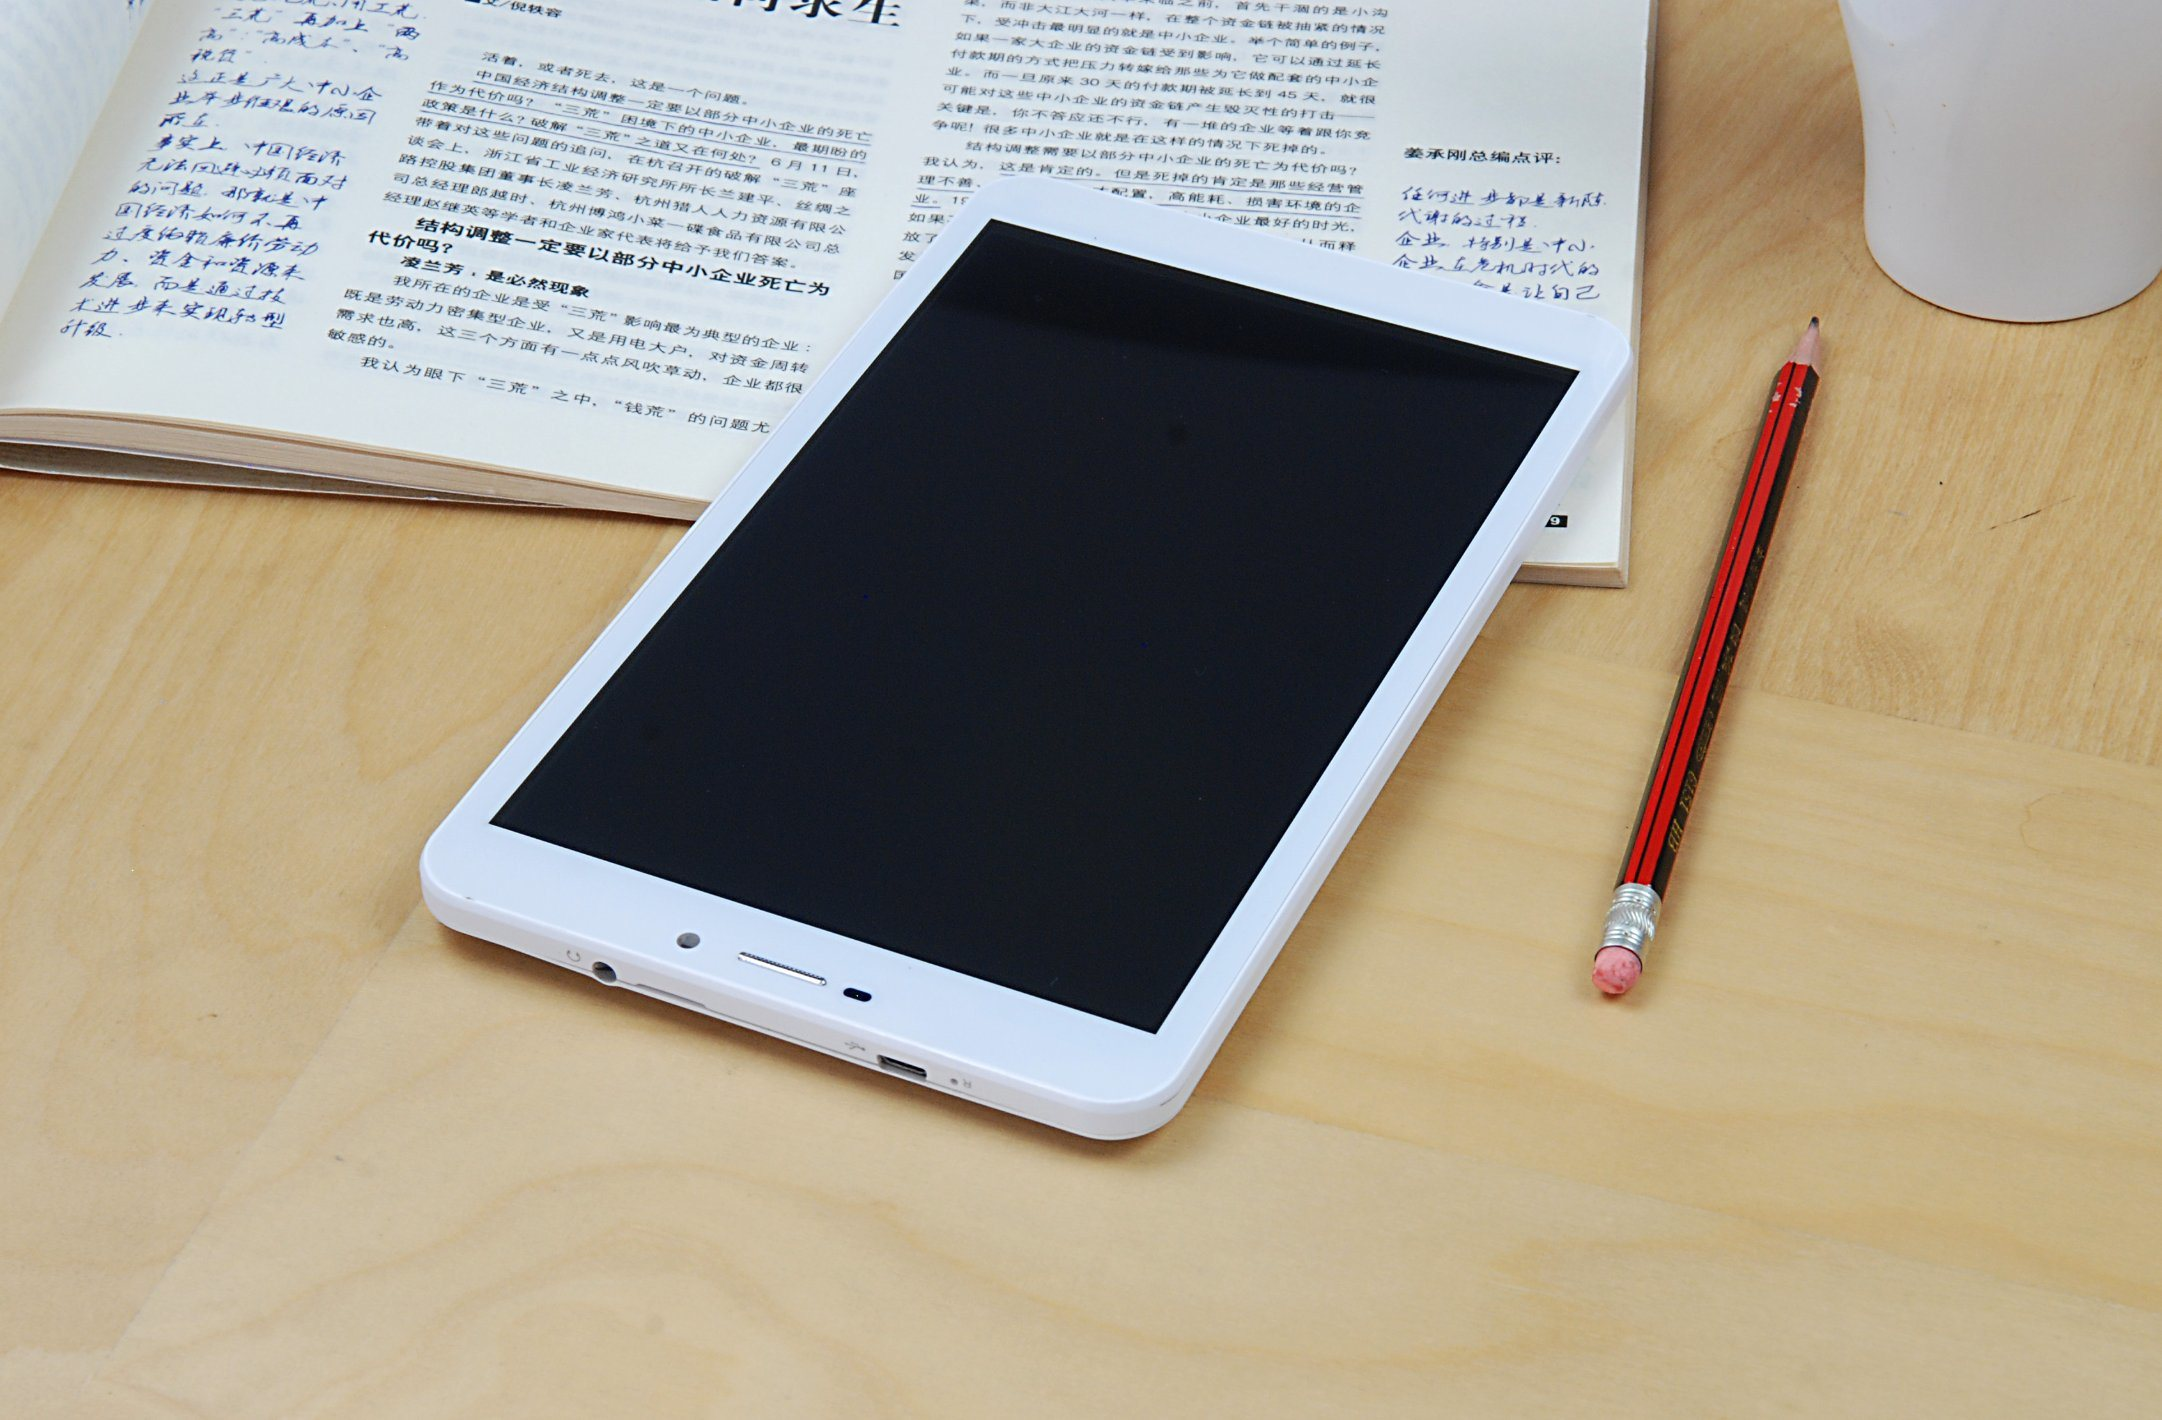 8 Inch Tablet PC, Mtk 8735 Quad Core, 3G 4G Lte Talking Tablet, Android 6.0 IPS Screen